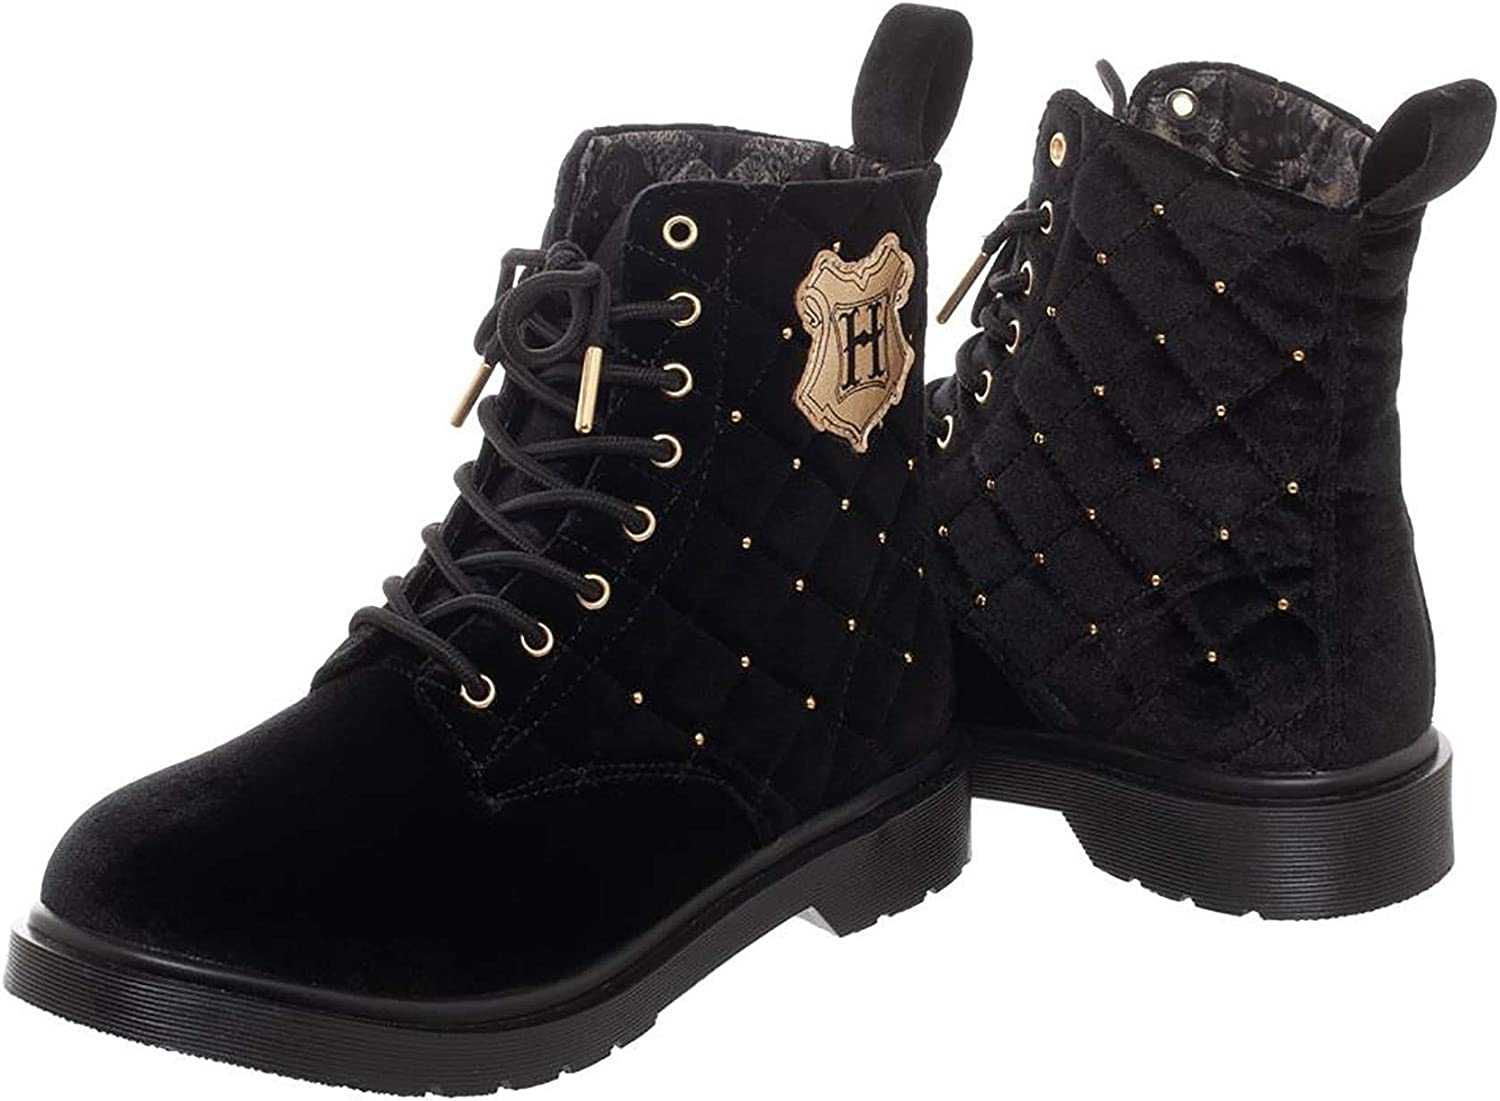 Harry Potter Quilted Womens Boots Size 10